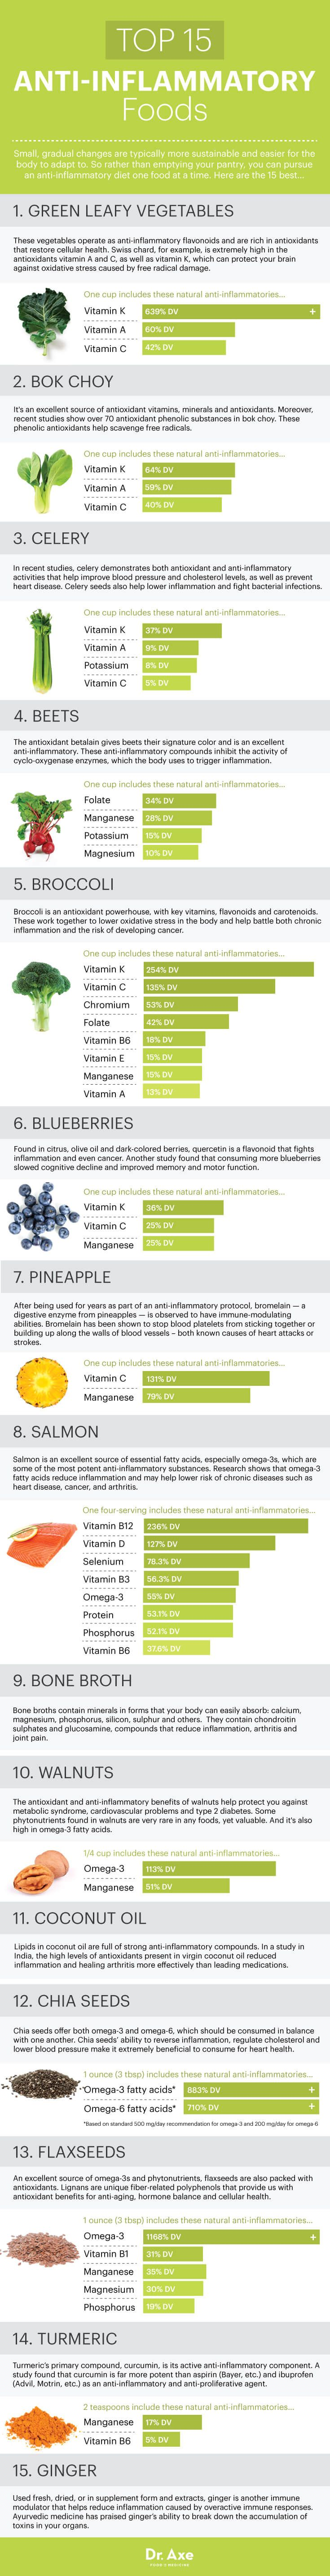 Top 15 Anti-Inflammatory Foods And Their Benefits Infographic